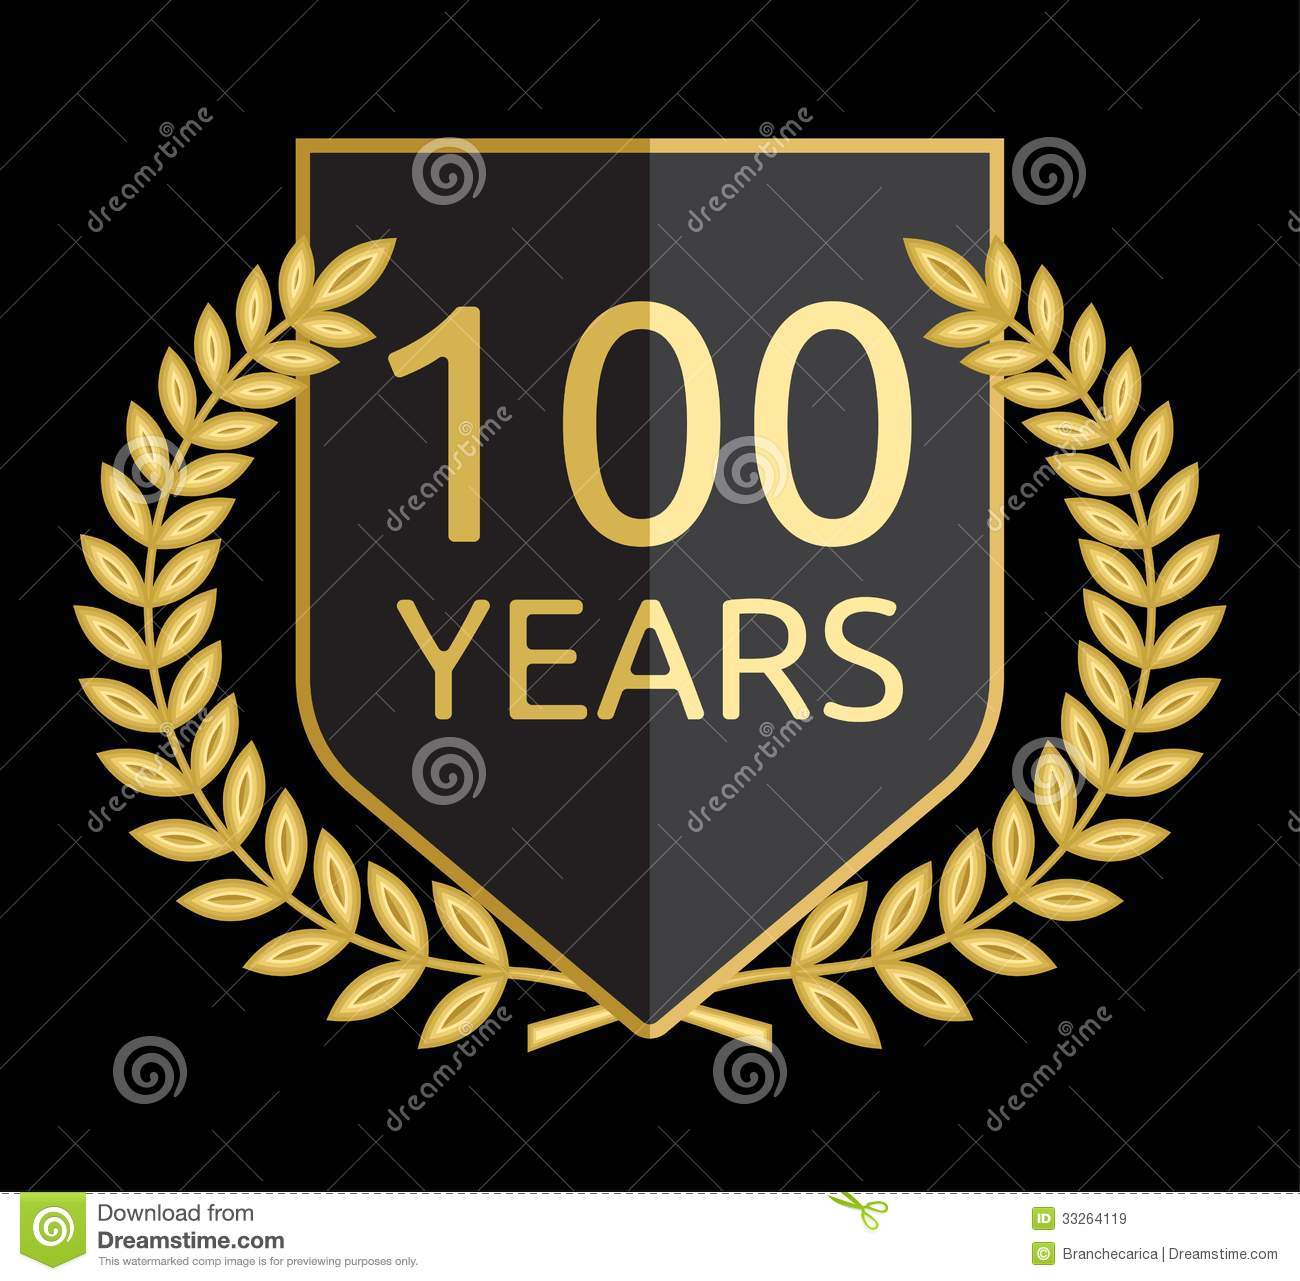 Laurel Wreath 100 Years Royalty Free Stock Images - Image: 33264119